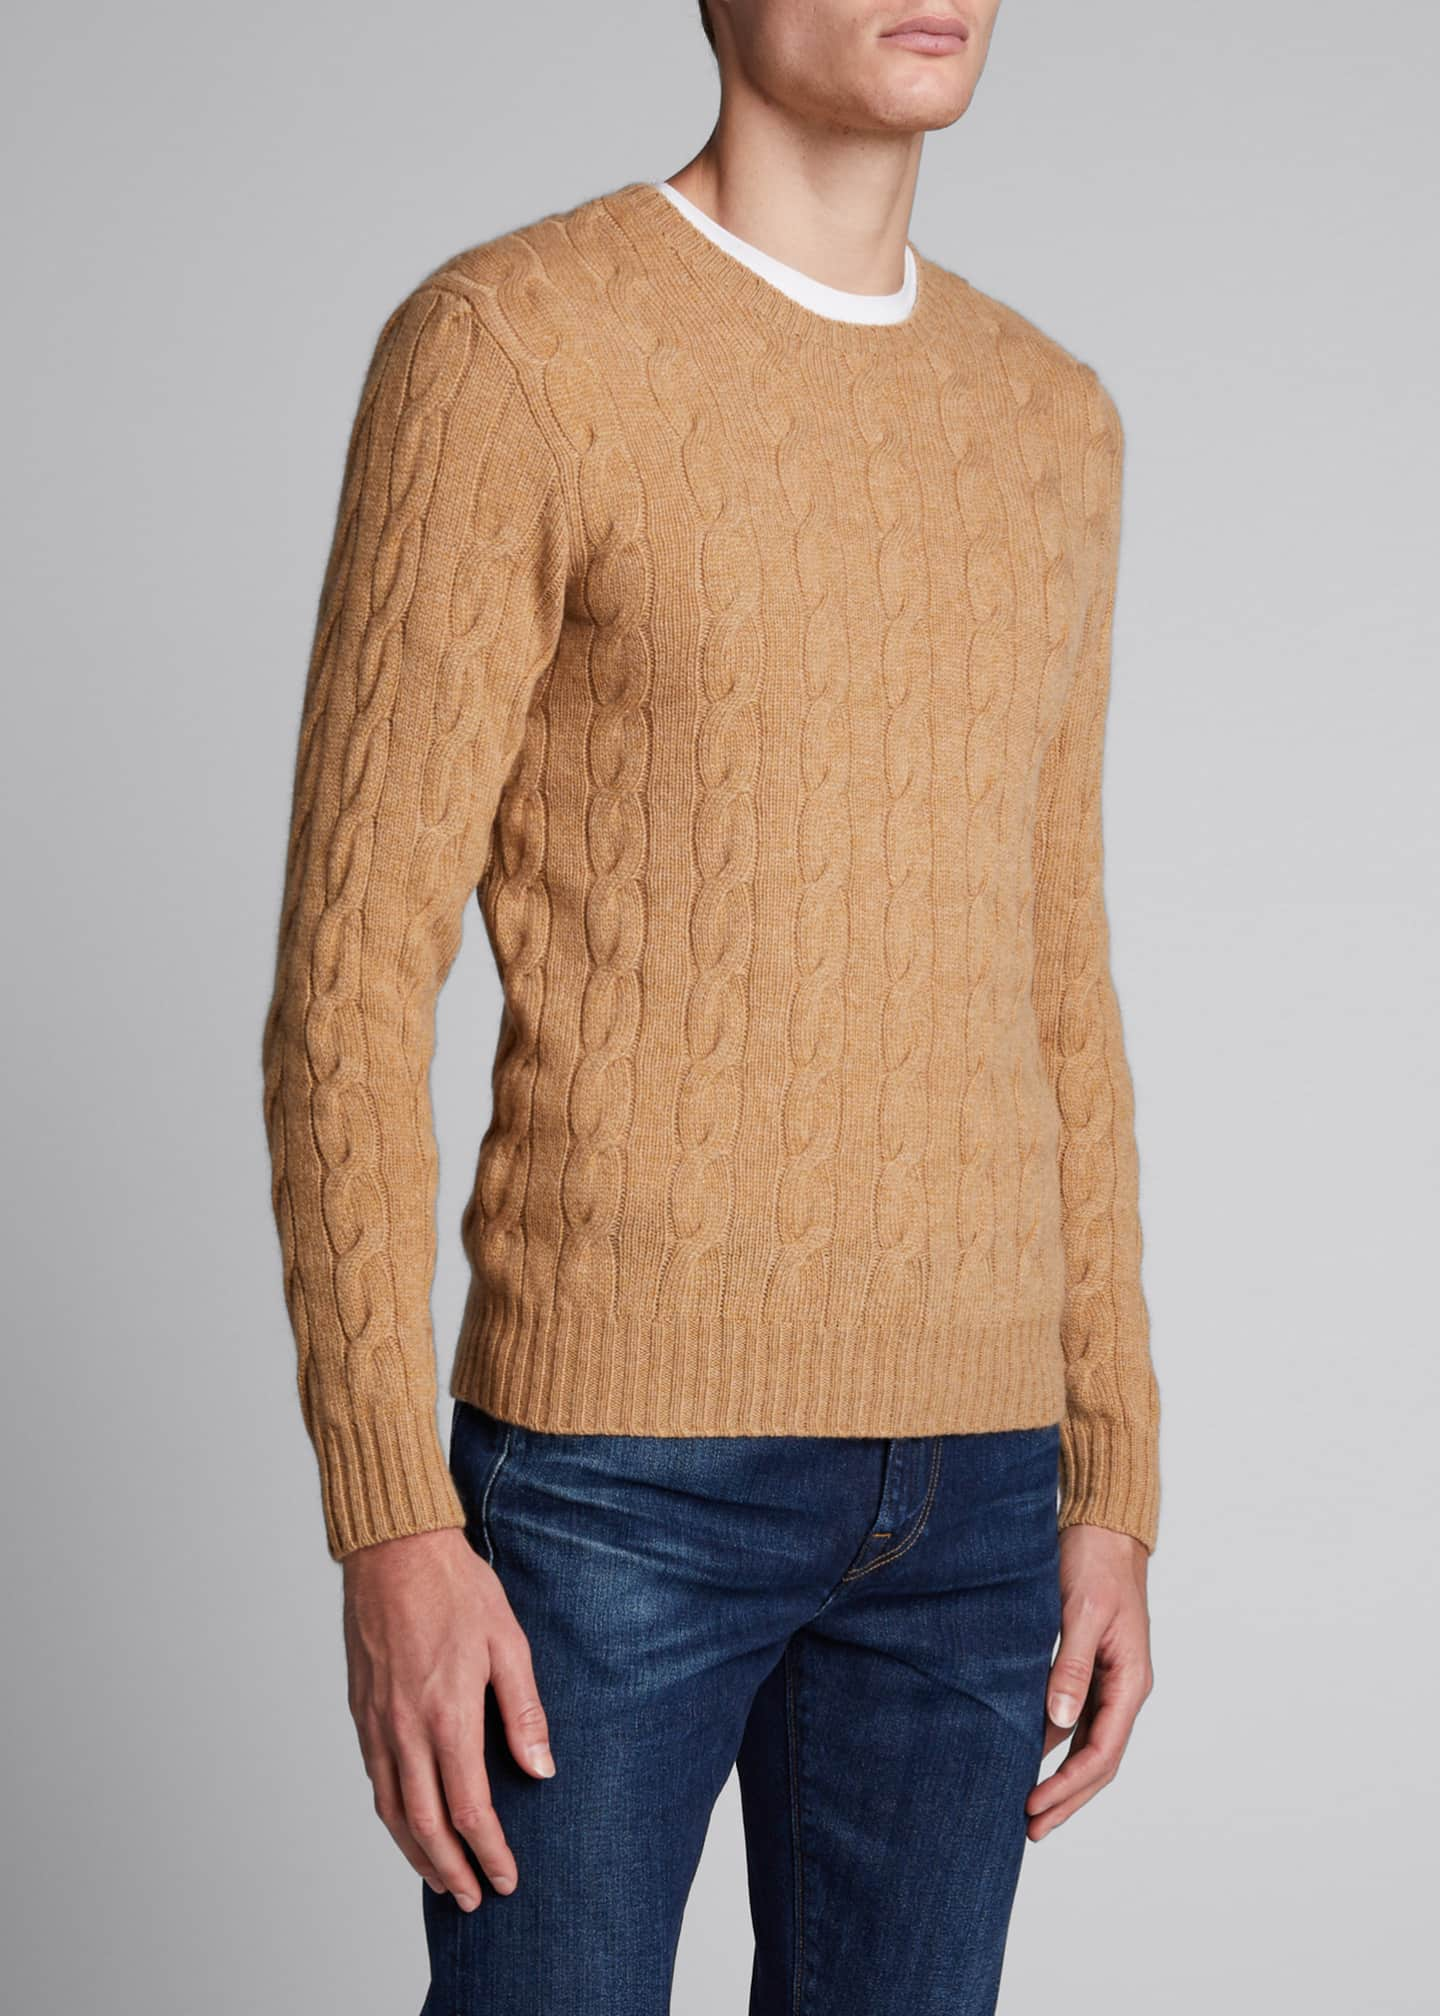 Image 3 of 4: Men's Cashmere Cable-Knit Crewneck Sweater, Beige